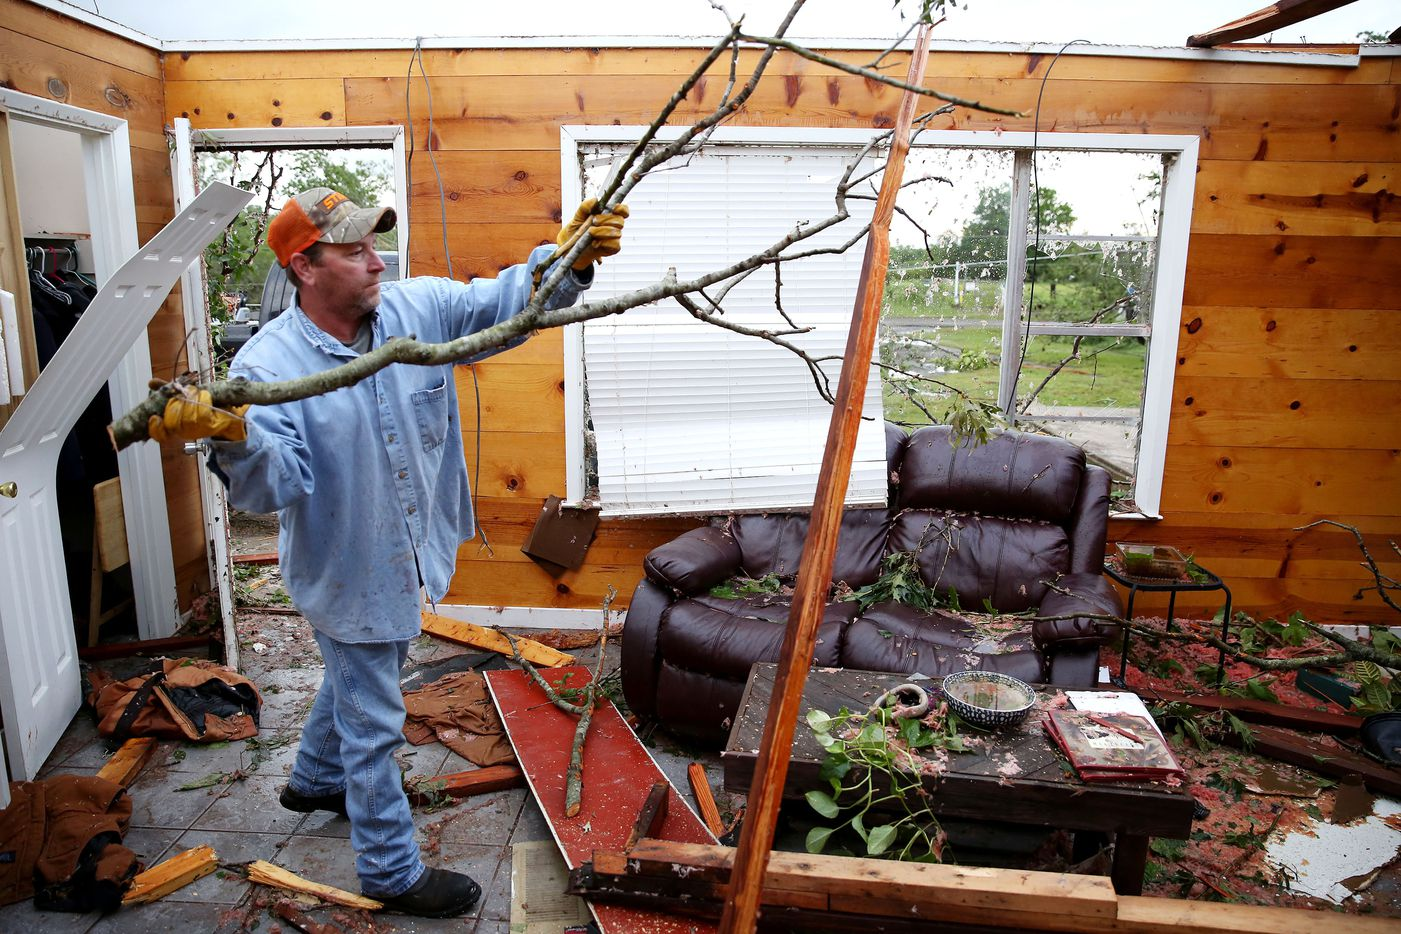 Andy Teague cleans up the living room of his family home along County Road 1910 after a tornado impacted Fruitvale, Texas on Sunday April 30, 2017. Teague took shelter in a tiled-shower with his wife Amy Teague, daughter Shelbie Teague, Shelbie's boyfriend Brandon Sherwood and two dogs. (Andy Jacobsohn/The Dallas Morning News)